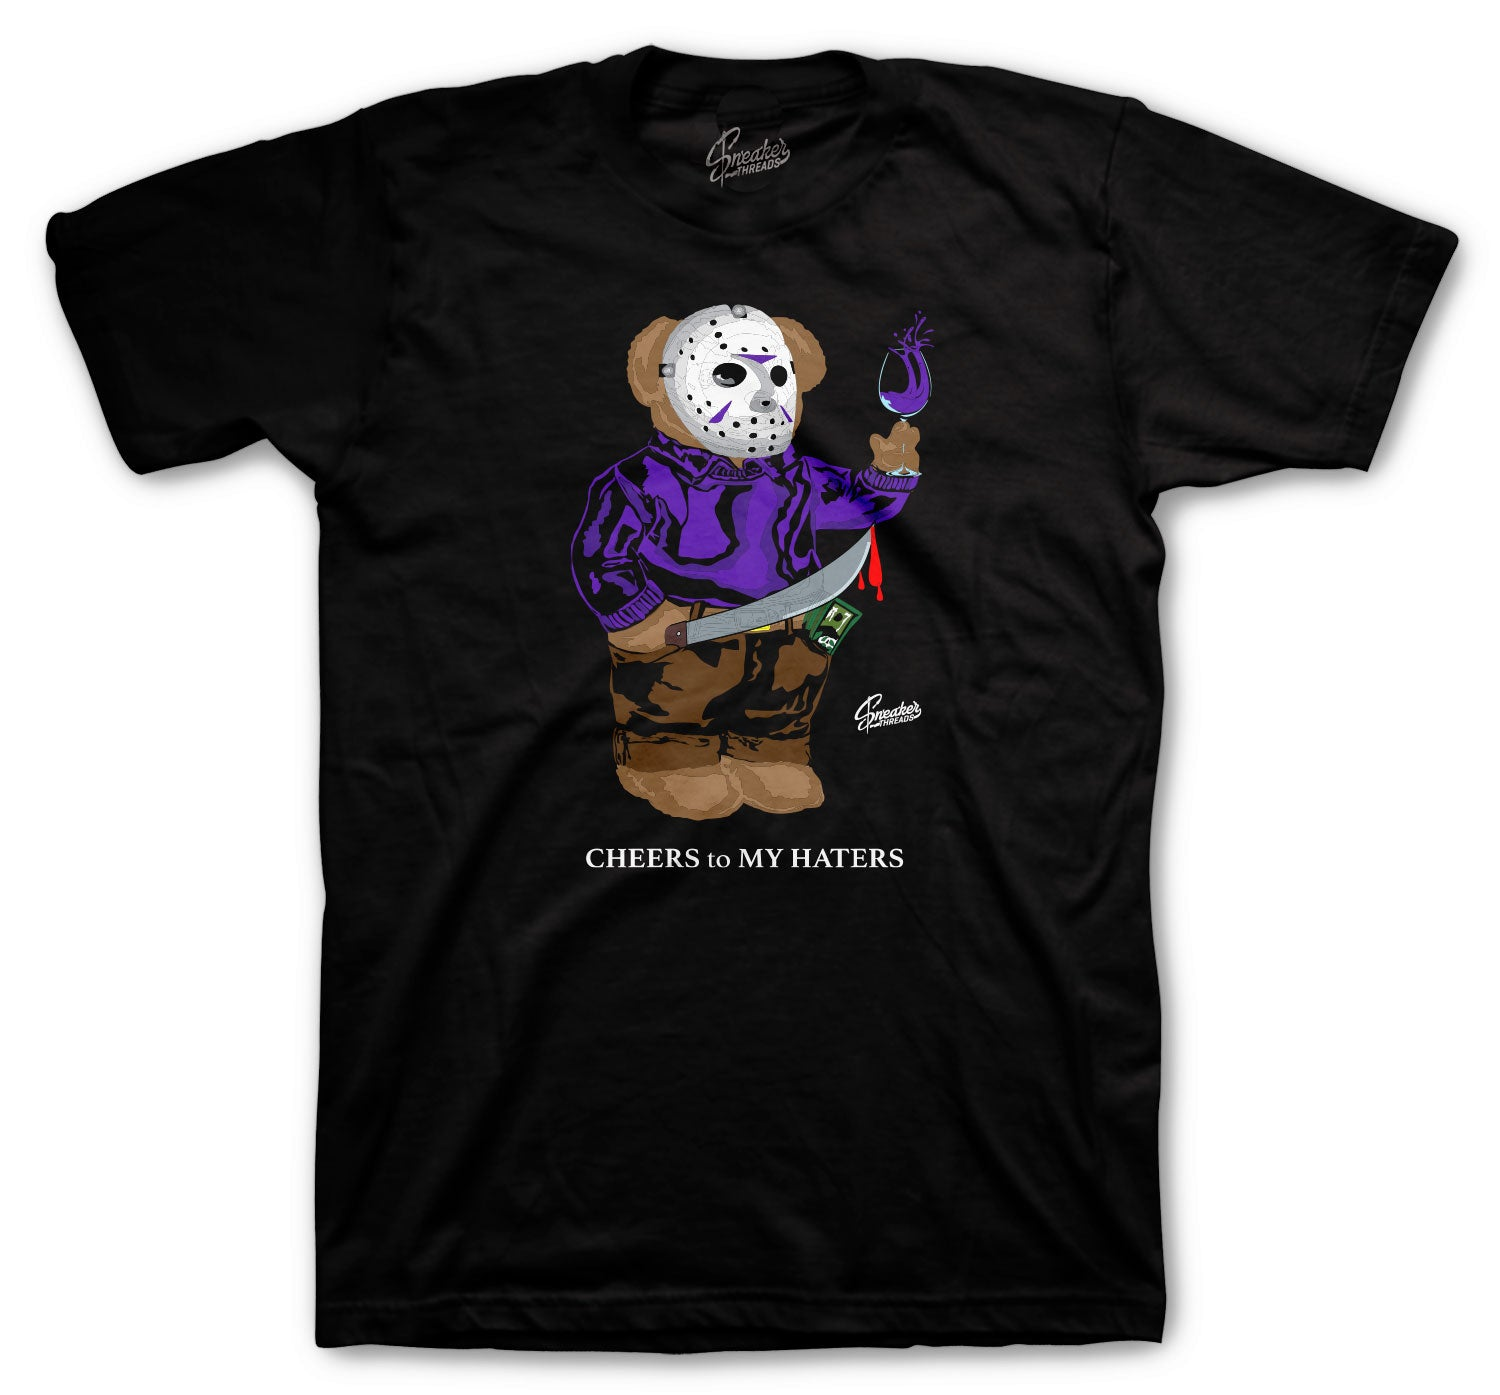 Jordan 12 Dark Concord Jason Bear Shirt